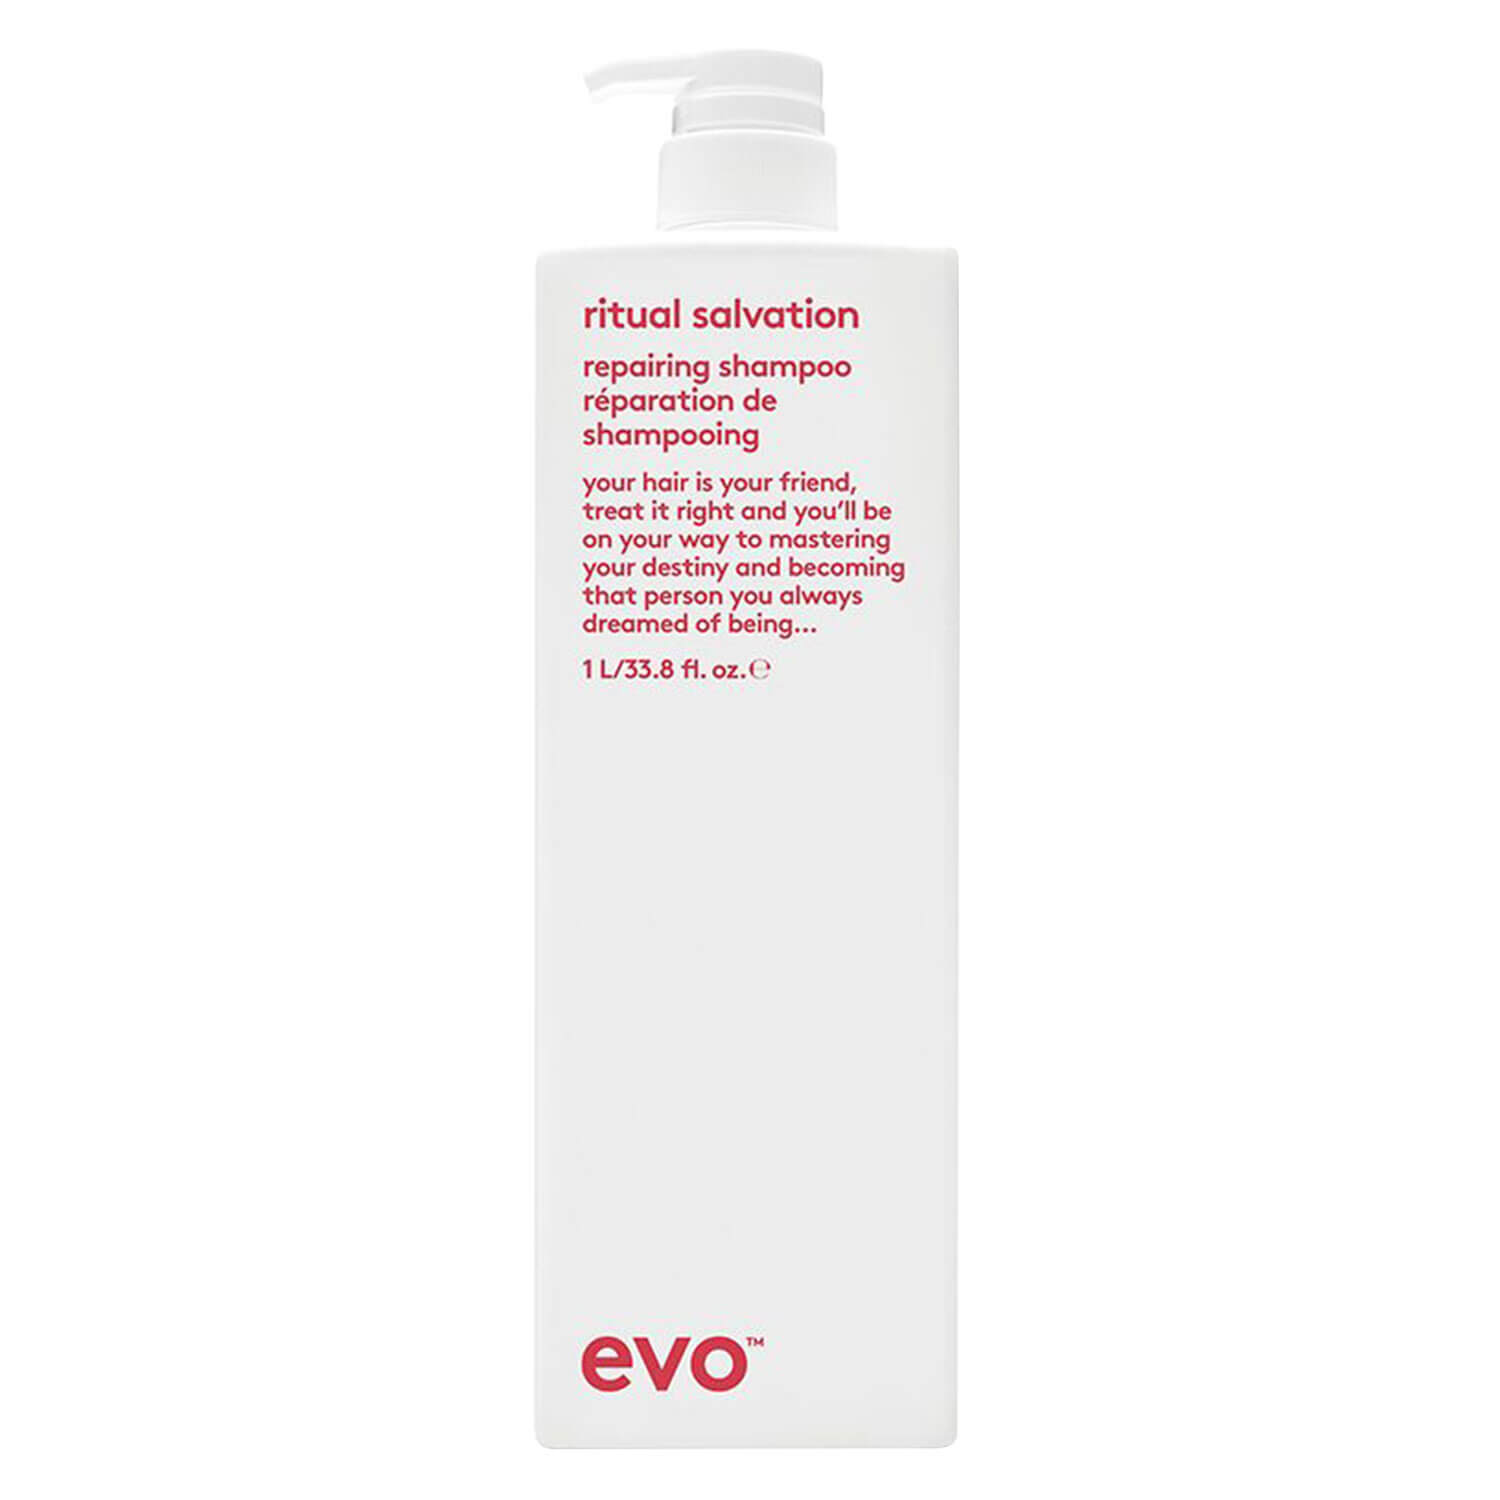 evo care - ritual salvation repairing shampoo